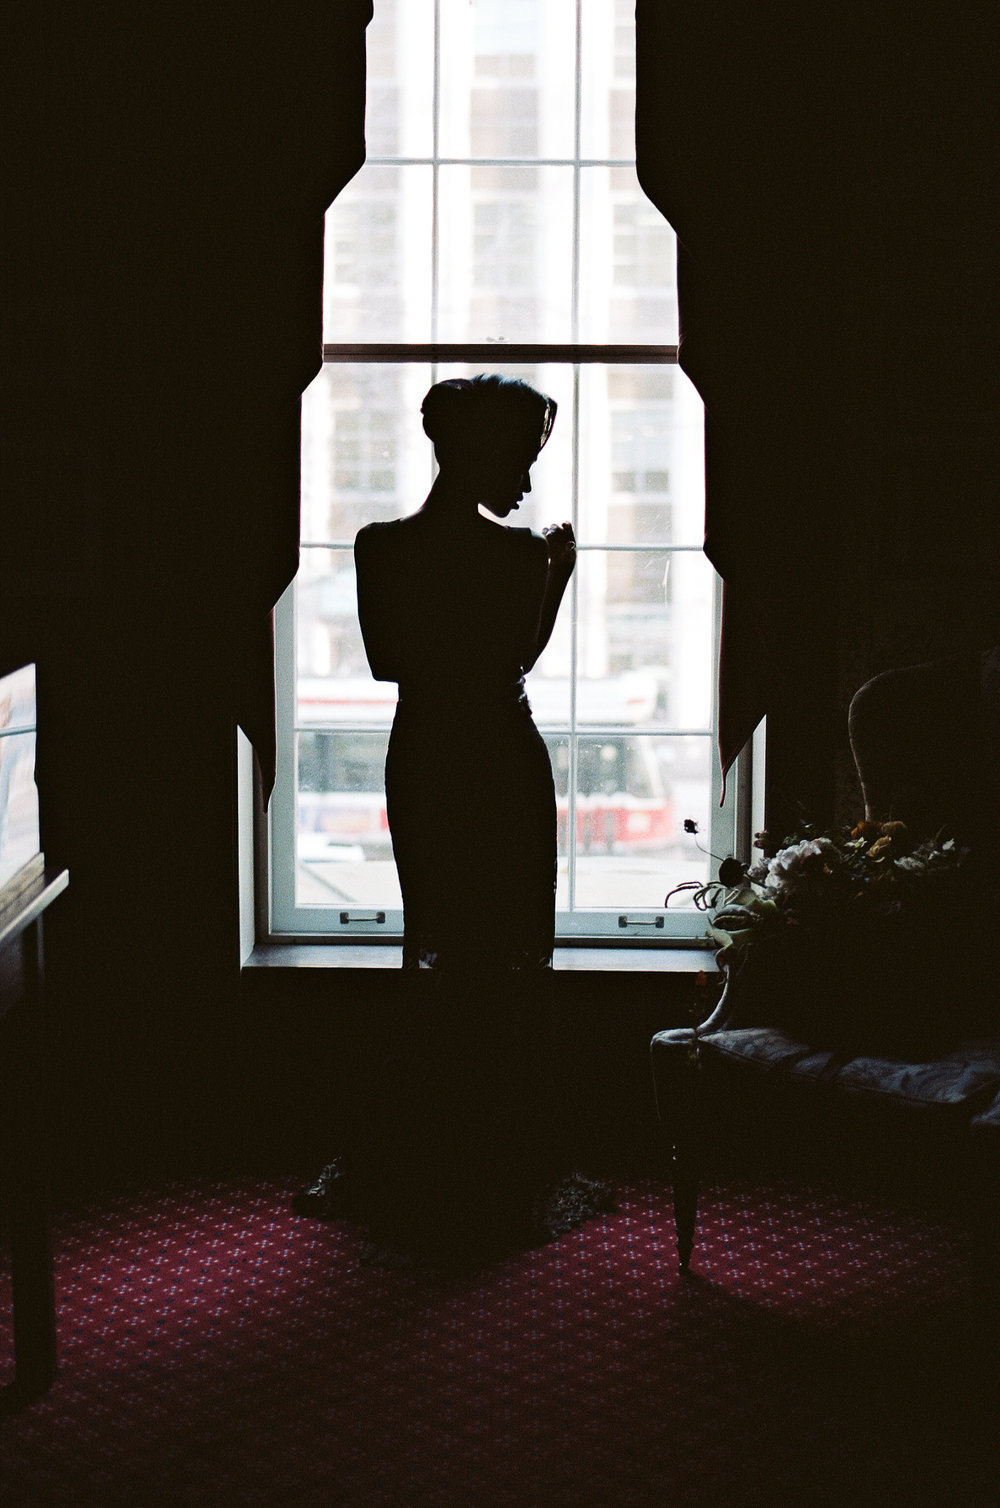 Portra800_645Fuji_15-bride-in-campbell-house-ballroom-high-fashion-narces-gown-black-bride-intimate-beauitful-portrait-silhouetted-bride-downtown-toronto-wedding-mansion.jpg